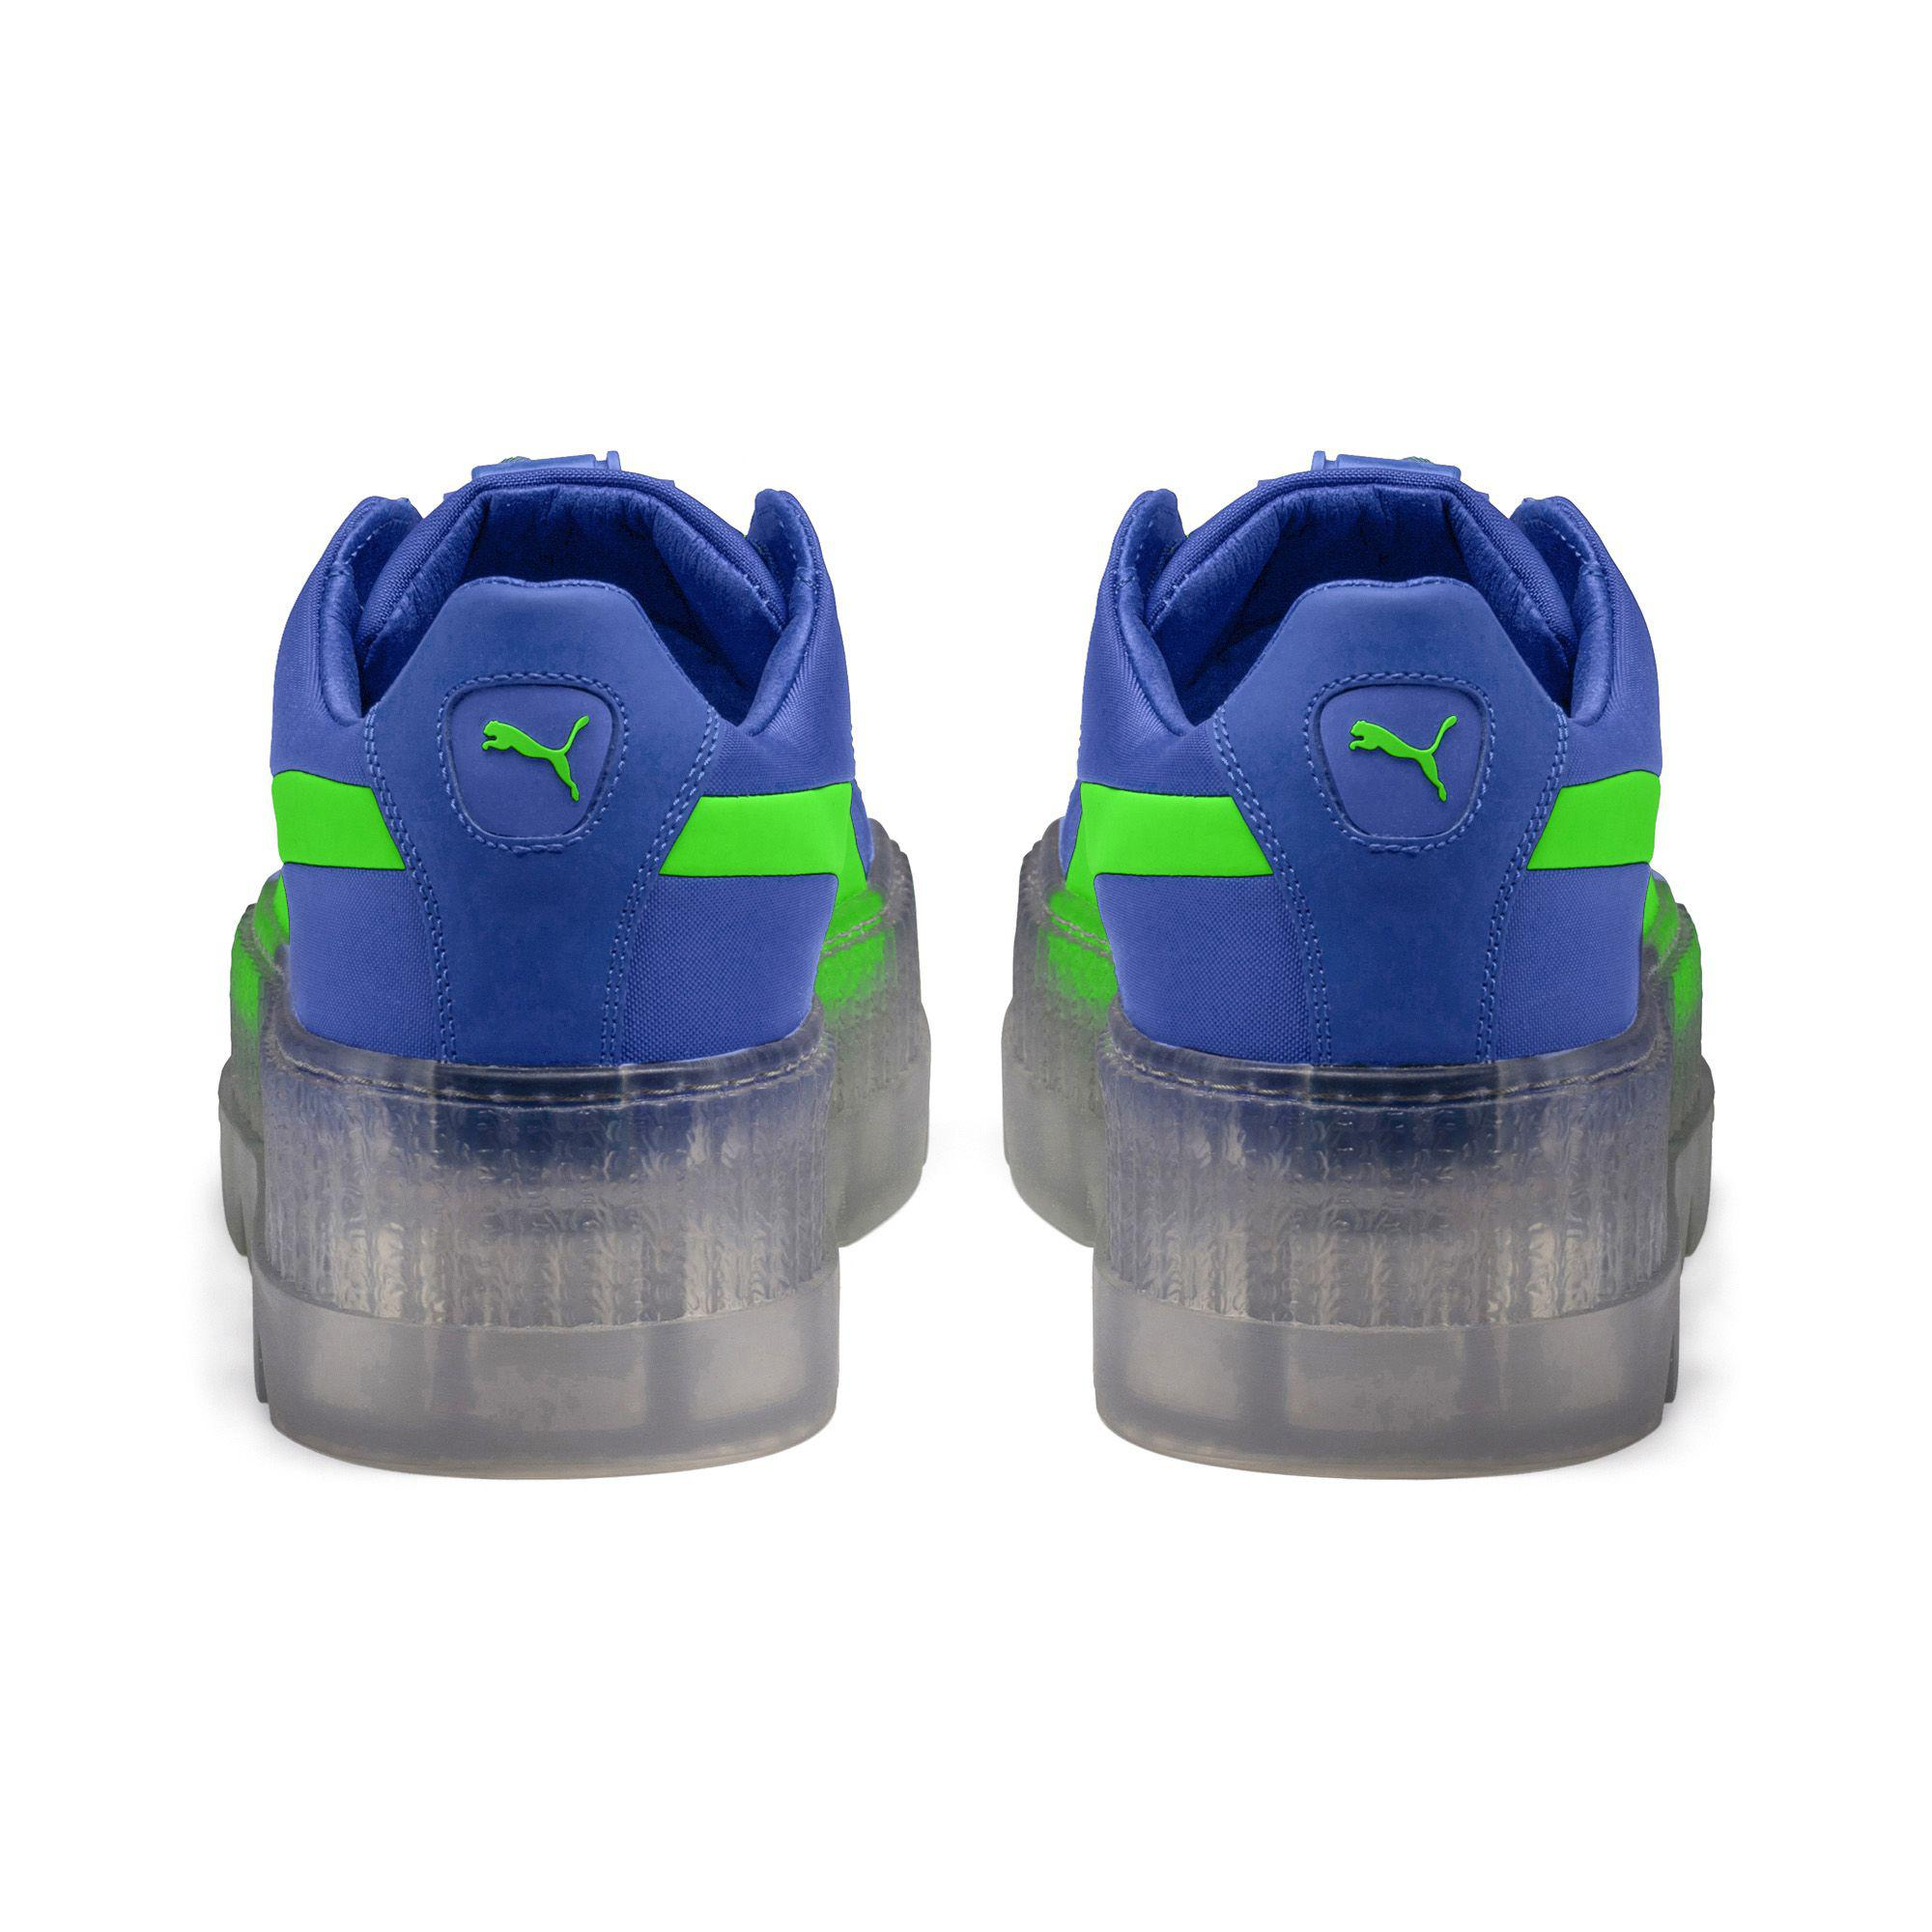 reputable site 1af90 7fa4d Blue Fenty Unisex Cleated Creeper Surf